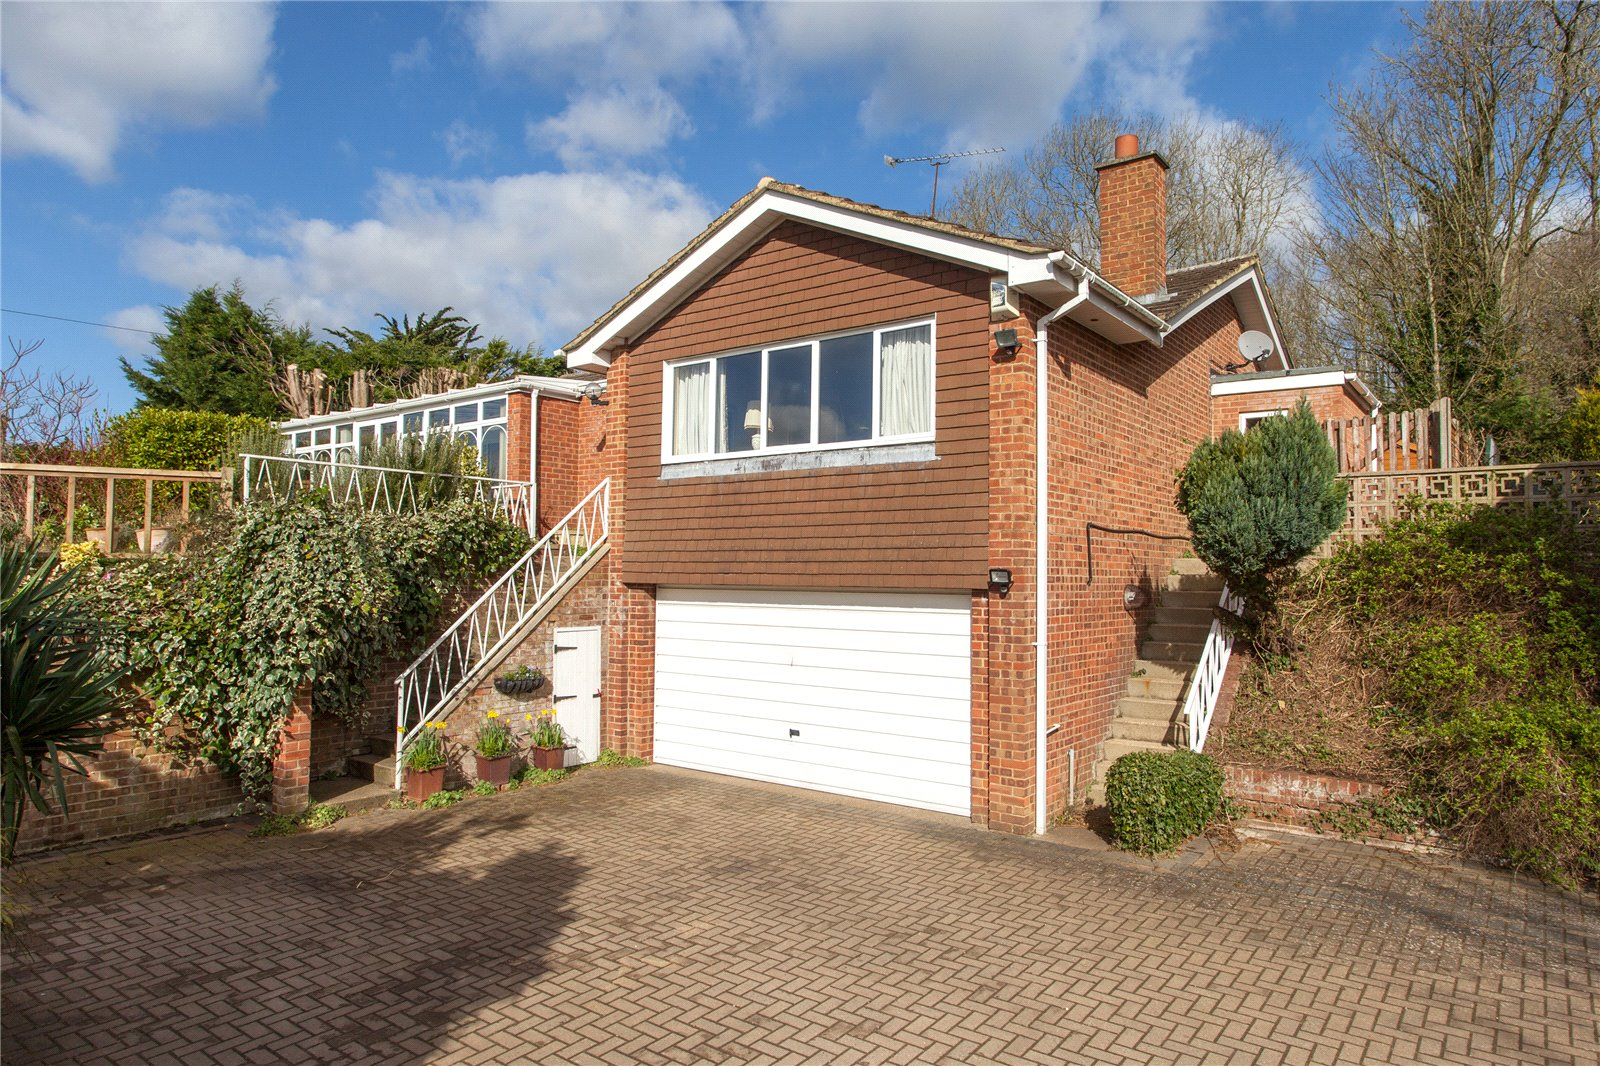 4 Bedrooms Detached House for sale in Knowl Hill Common, Knowl Hill, Reading, Berkshire, RG10